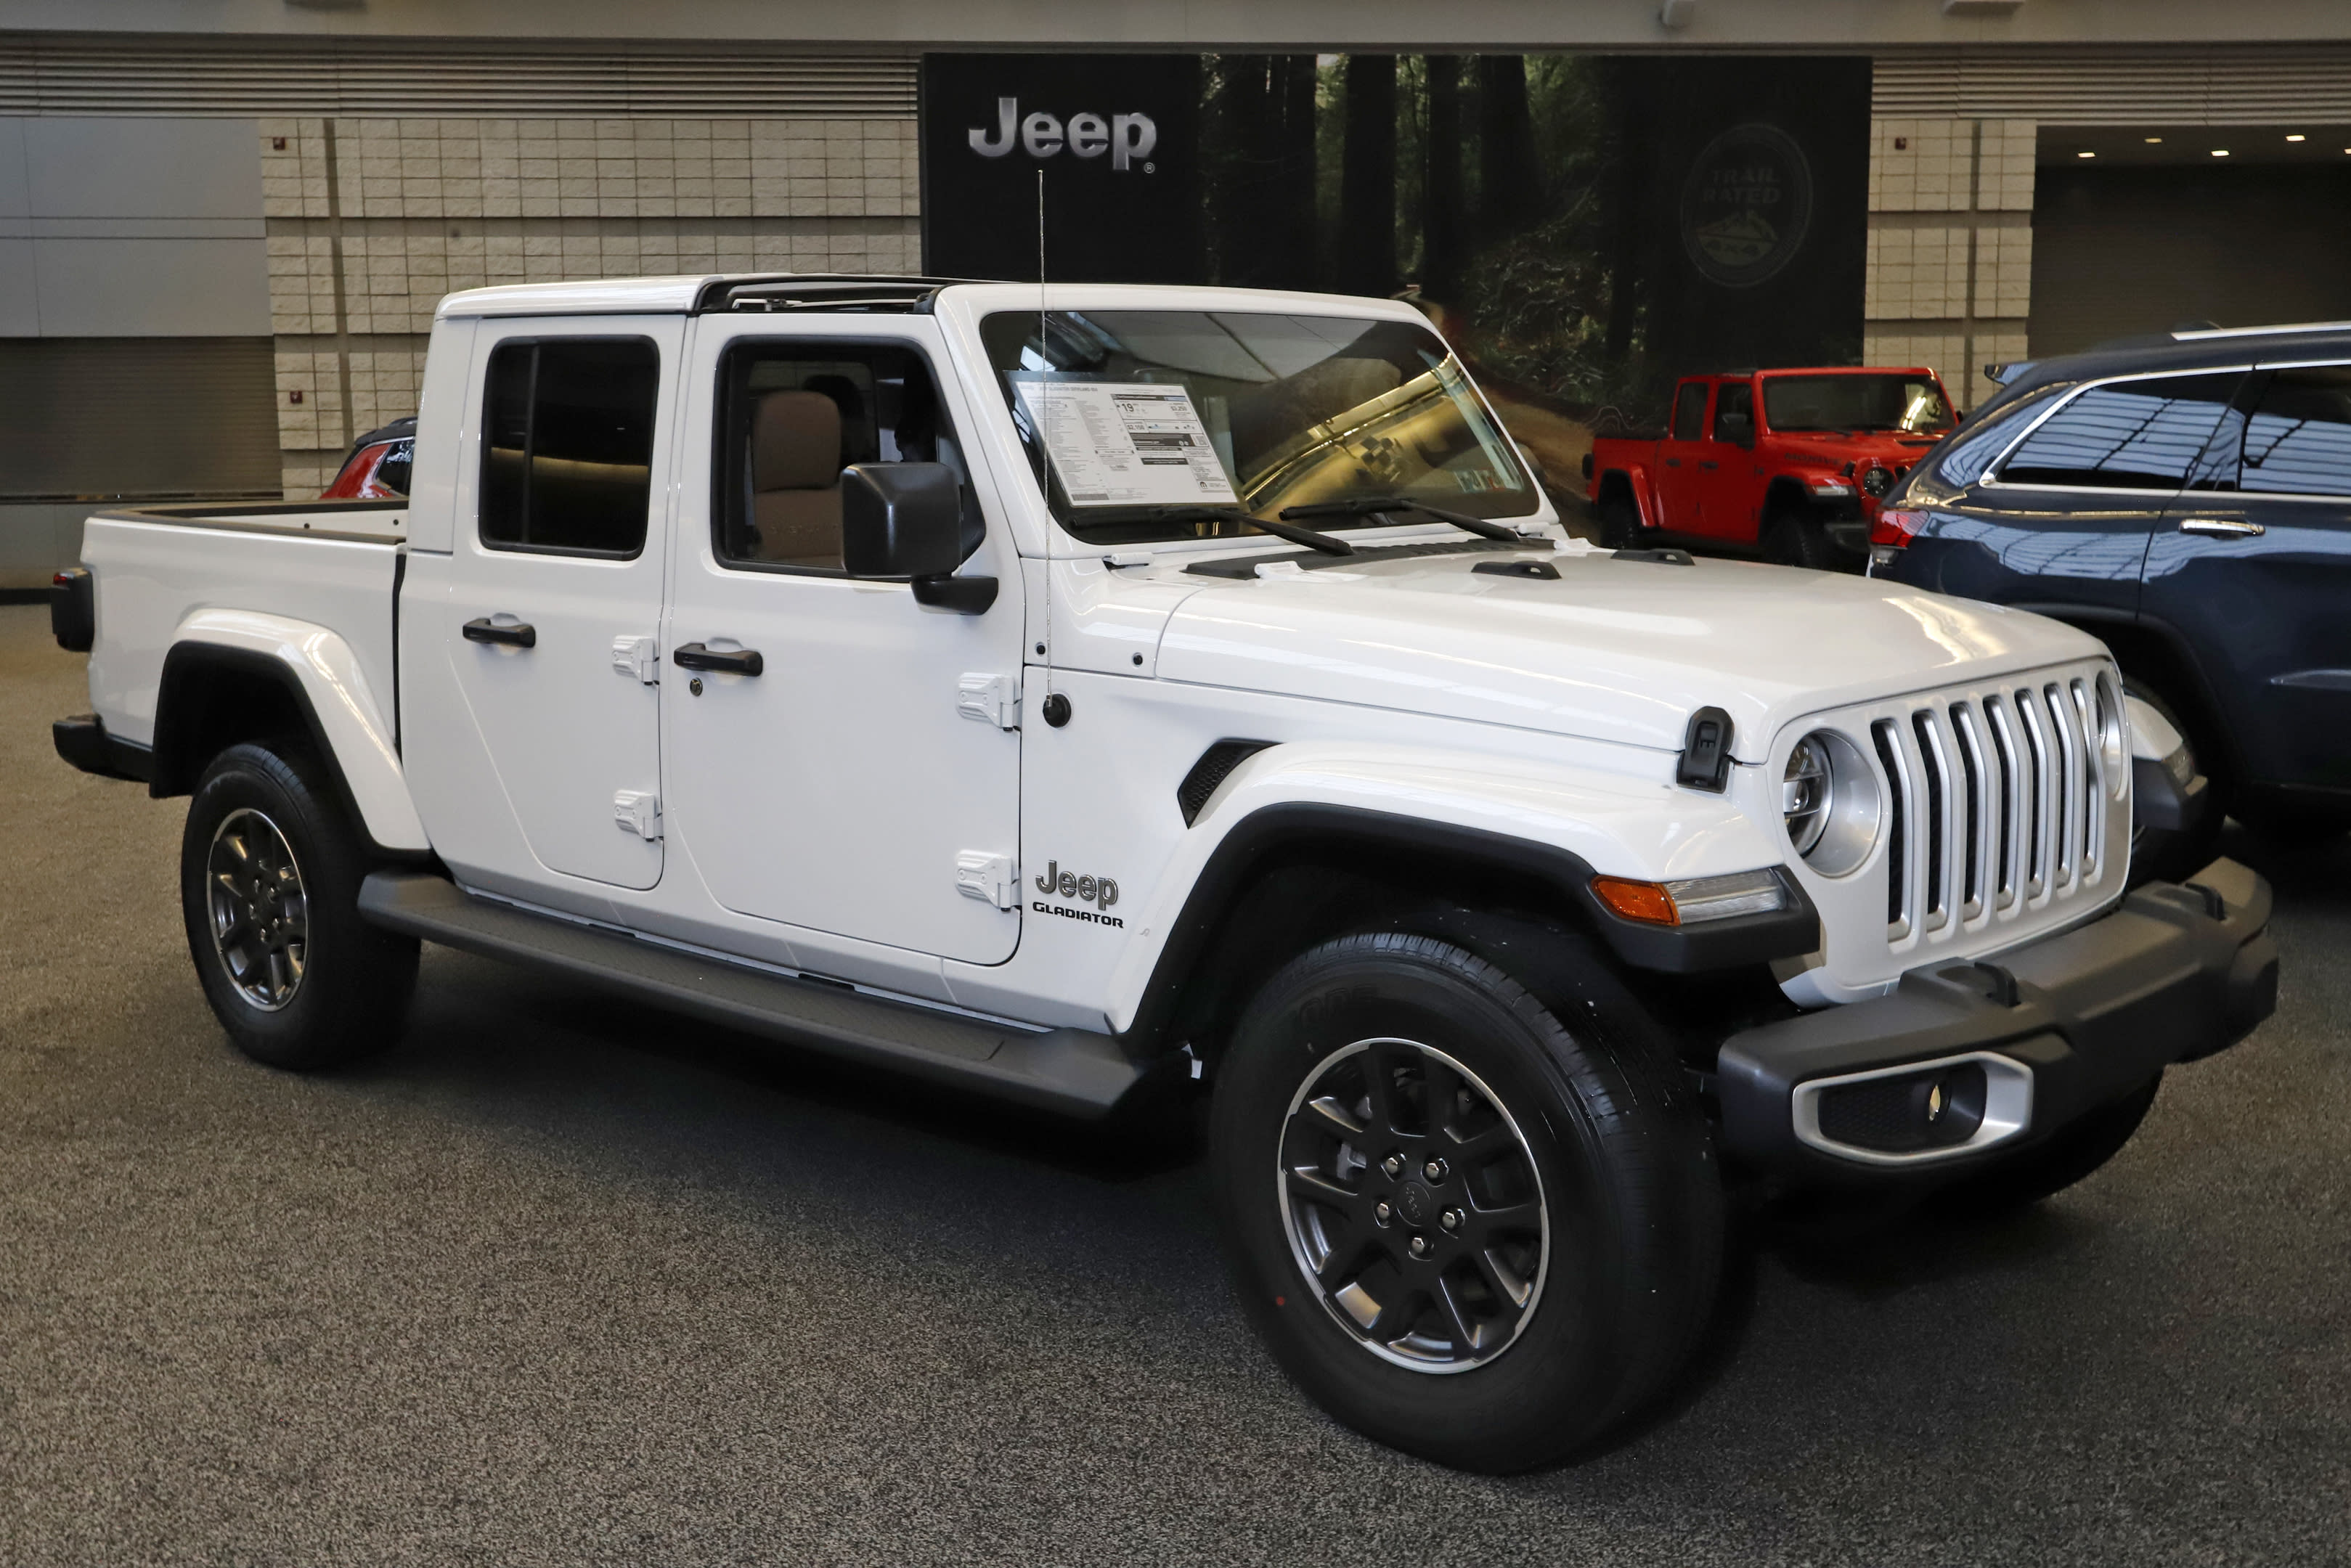 Jeep Gladiator pickup: The high cost of bliss